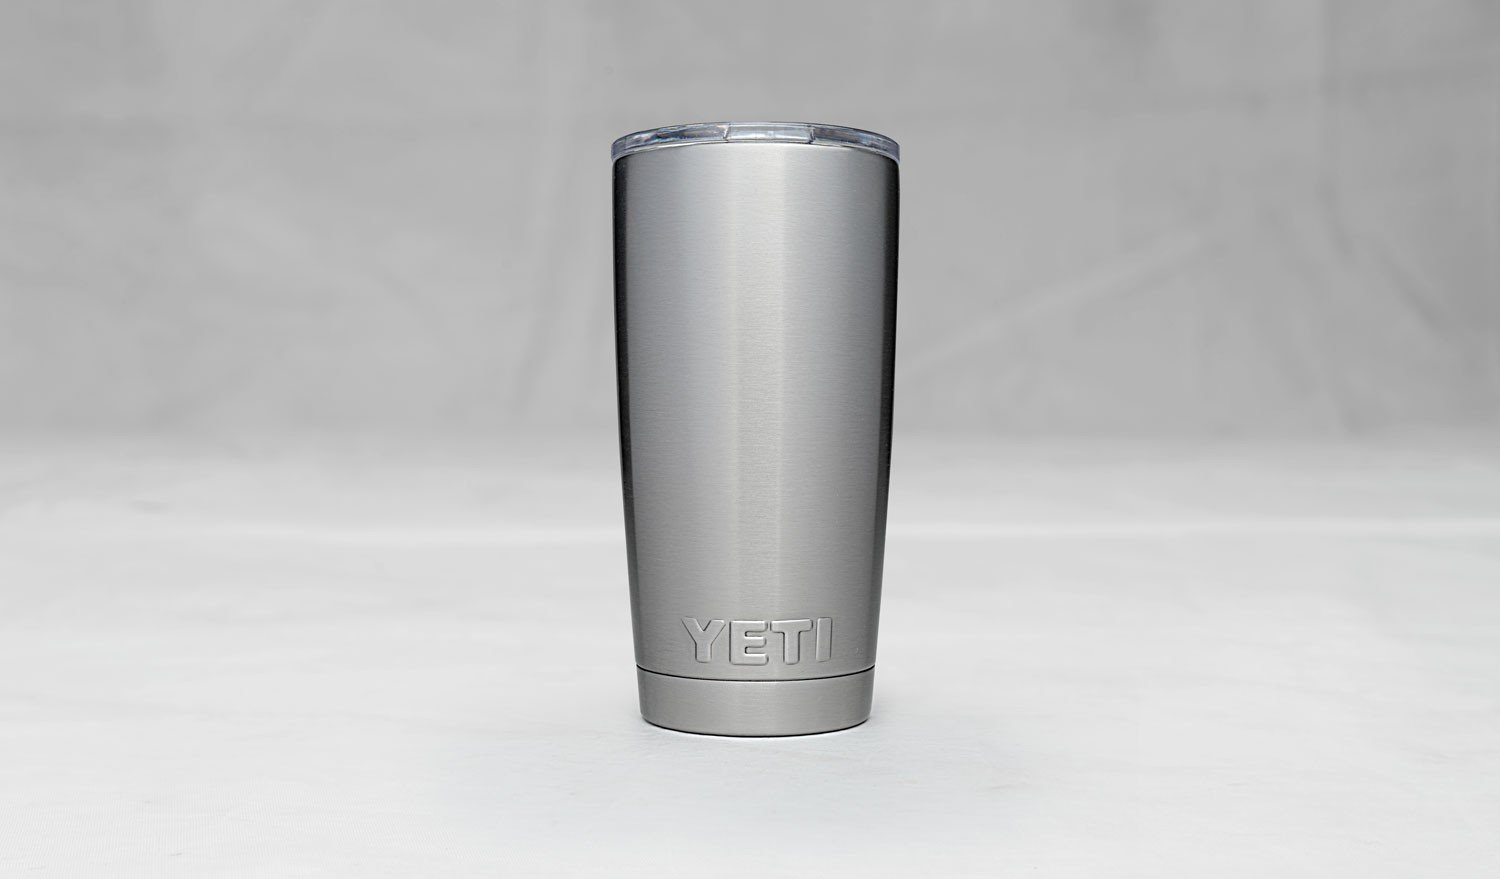 YETI Rambler 20 oz Stainless Steel Vacuum Insulated Tumbler with Lid (Stainless Steel) by YETI (Image #3)